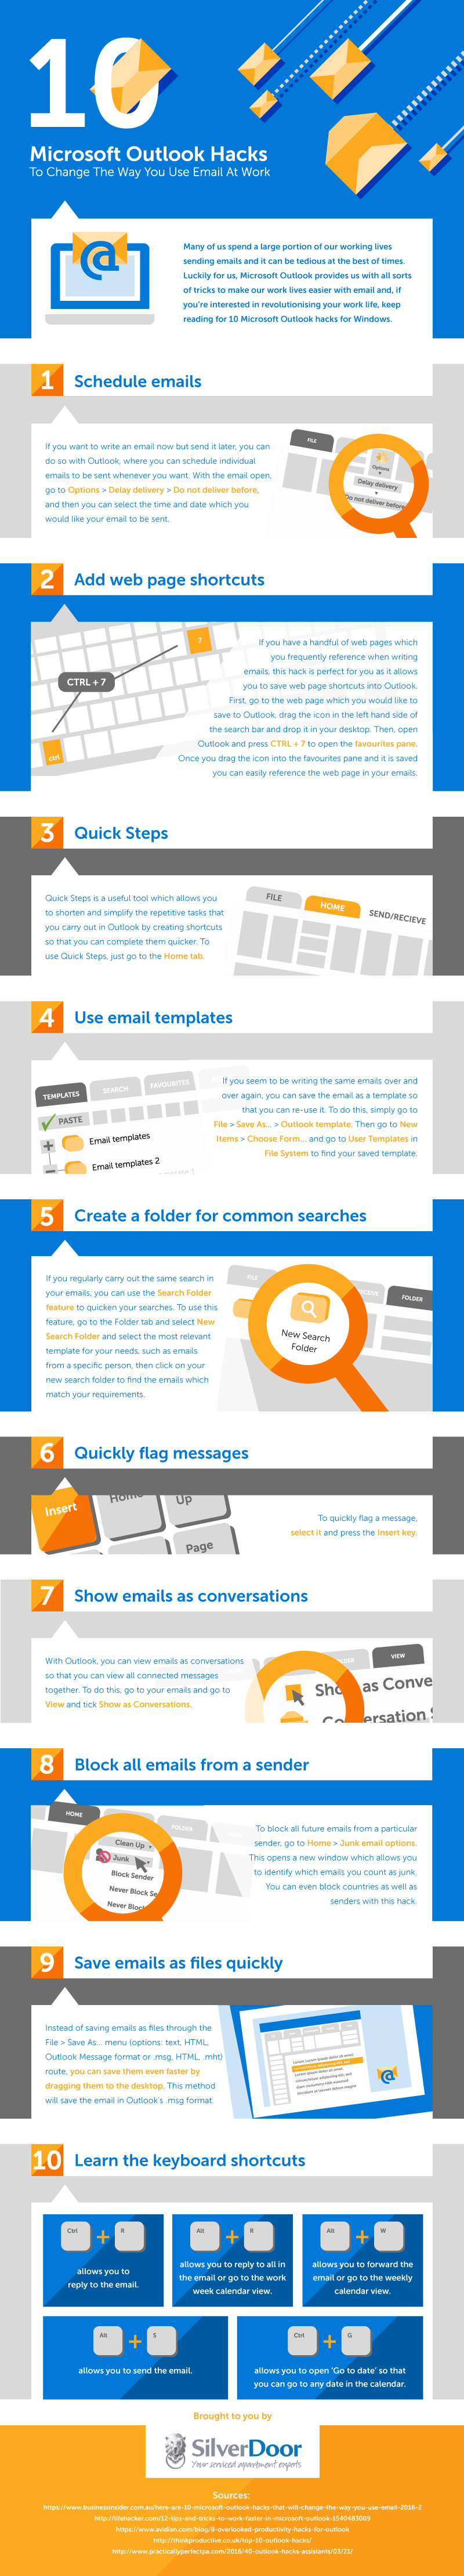 10 Microsoft Outlook Hacks To Change The Way You Use Email At Work [Infographic]